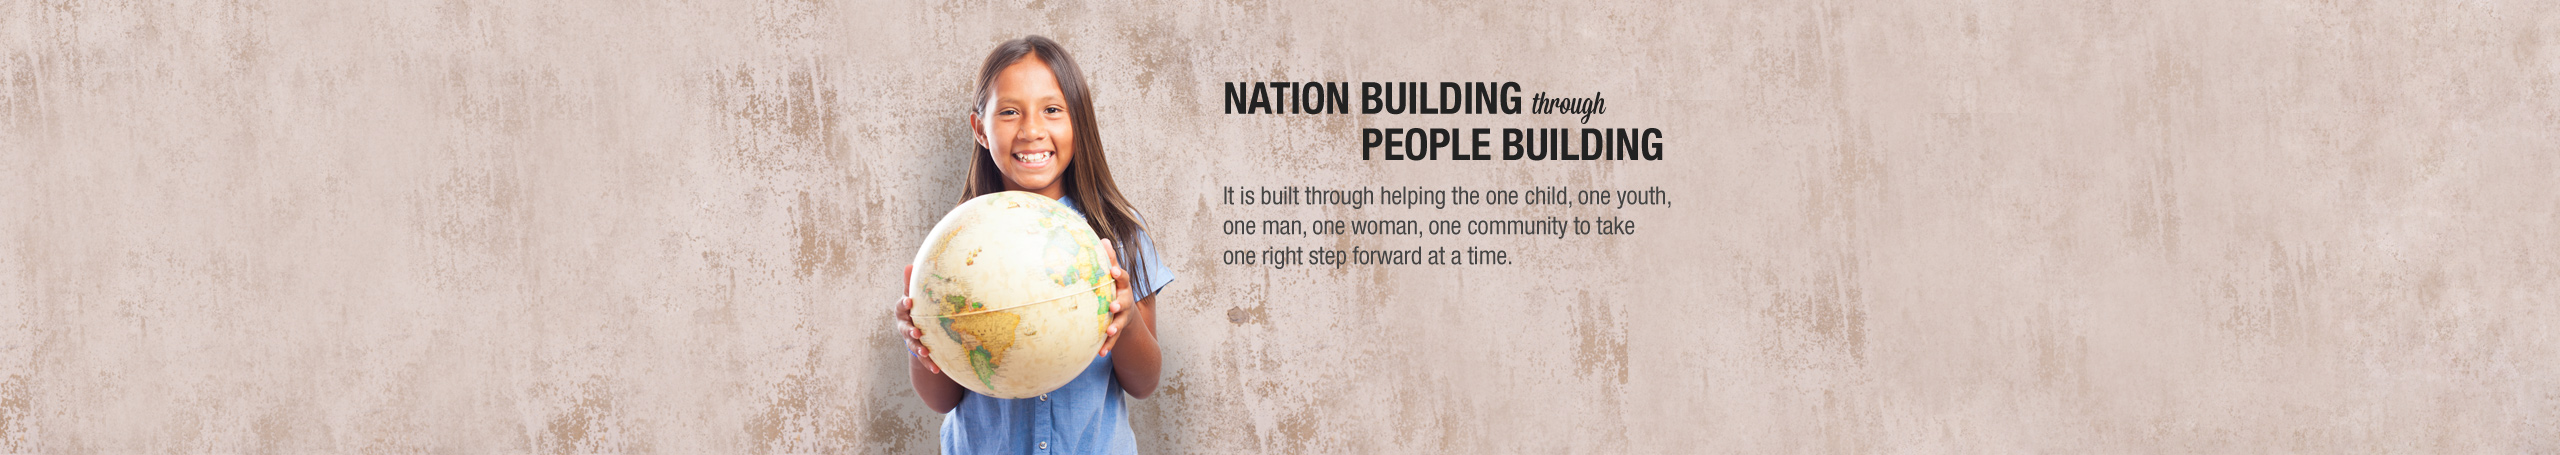 nationbuilding-slider